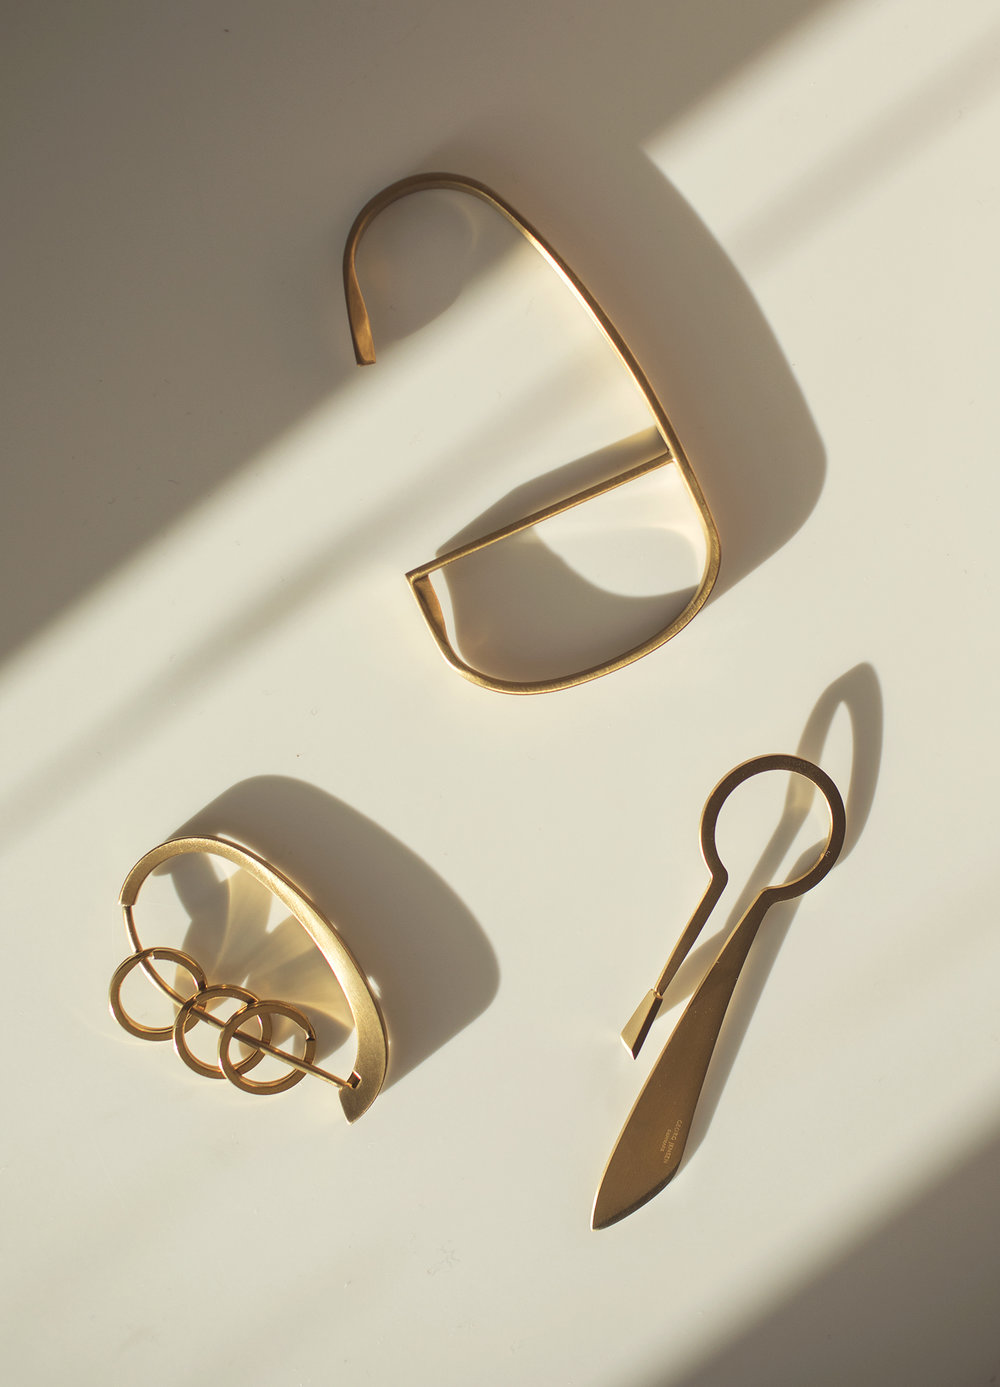 Georg Jensen Shades